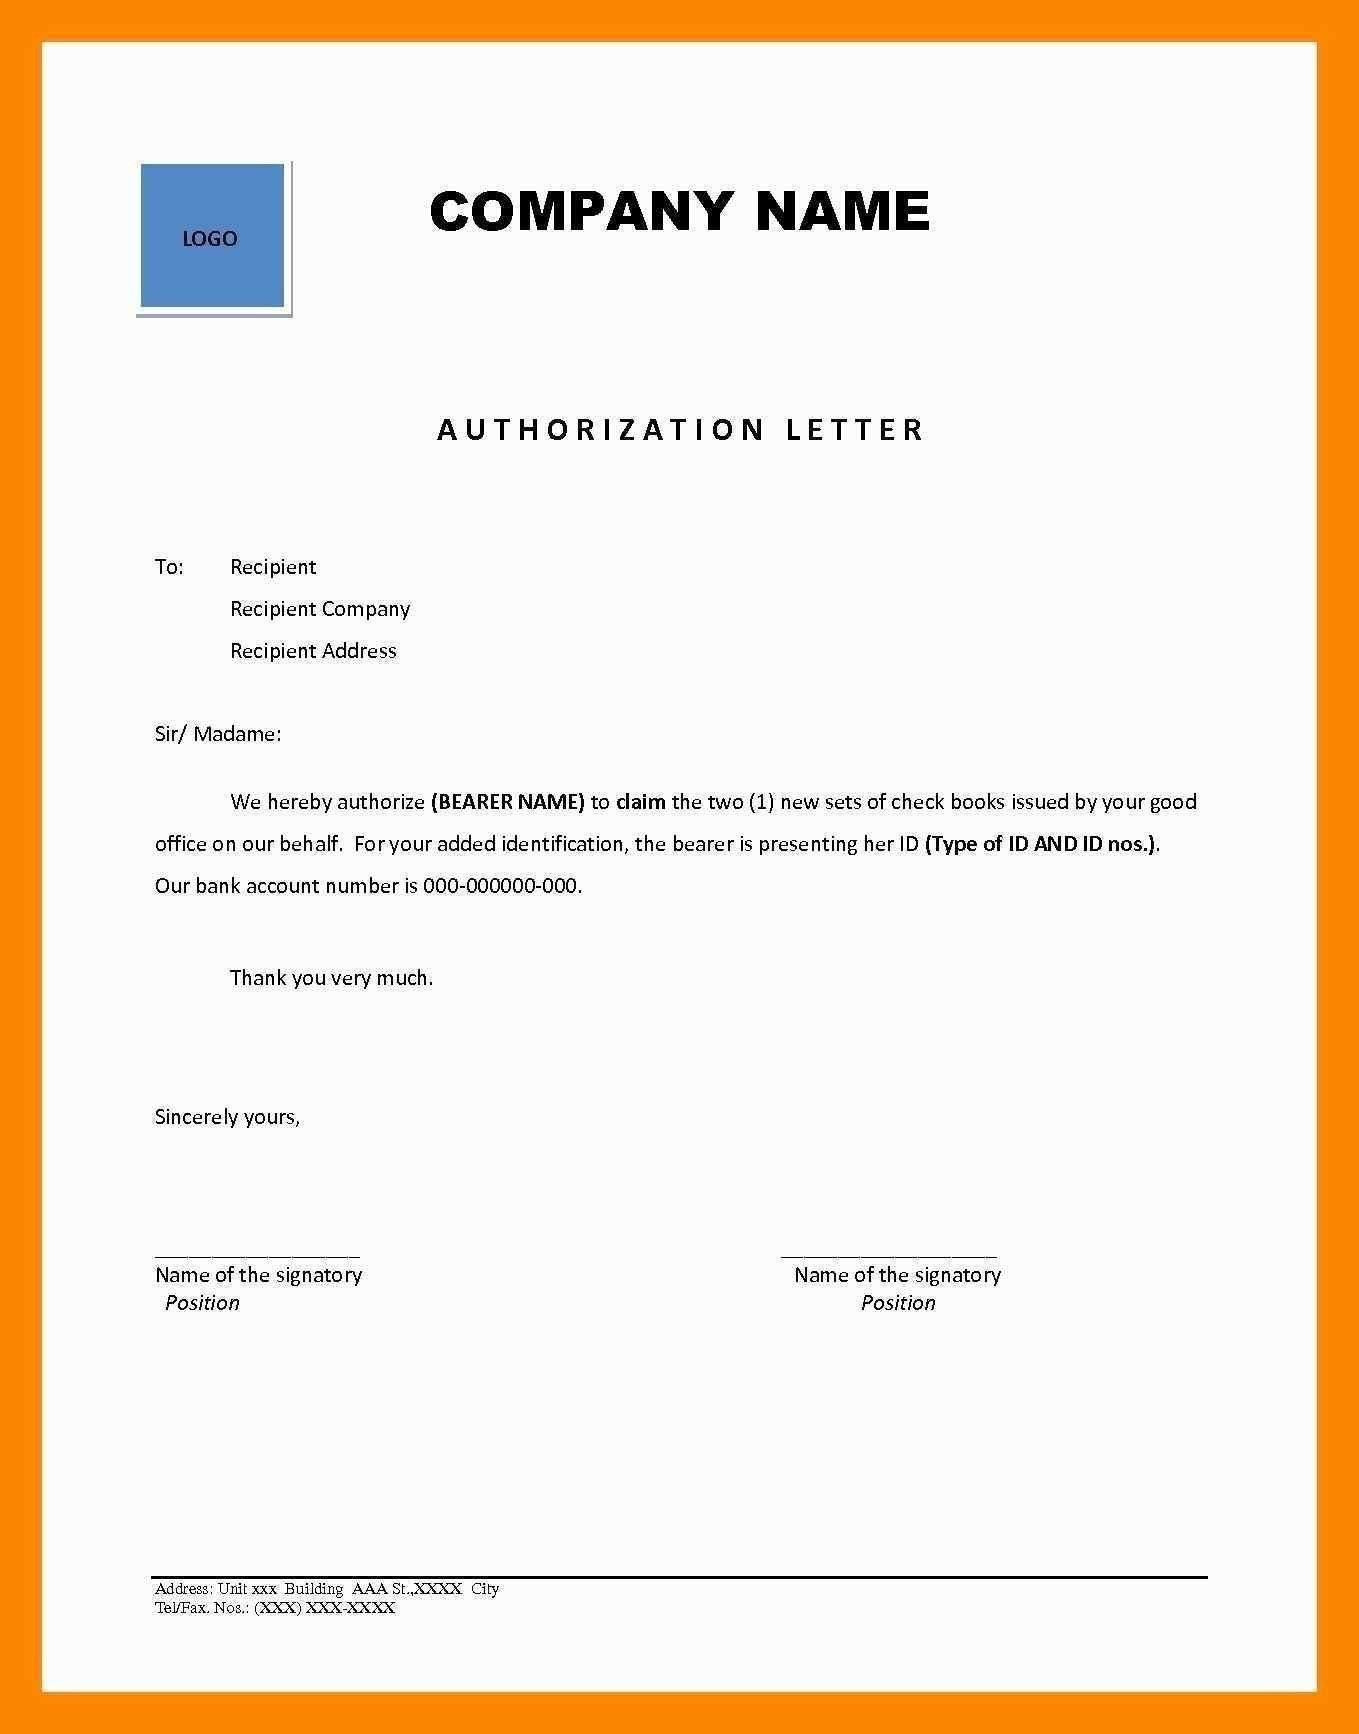 You Can See This Valid Letter Format For Bank For Cheque Book At Valid Letter Format For Bank For Cheque Book Business Letter Format Letter Templates Lettering